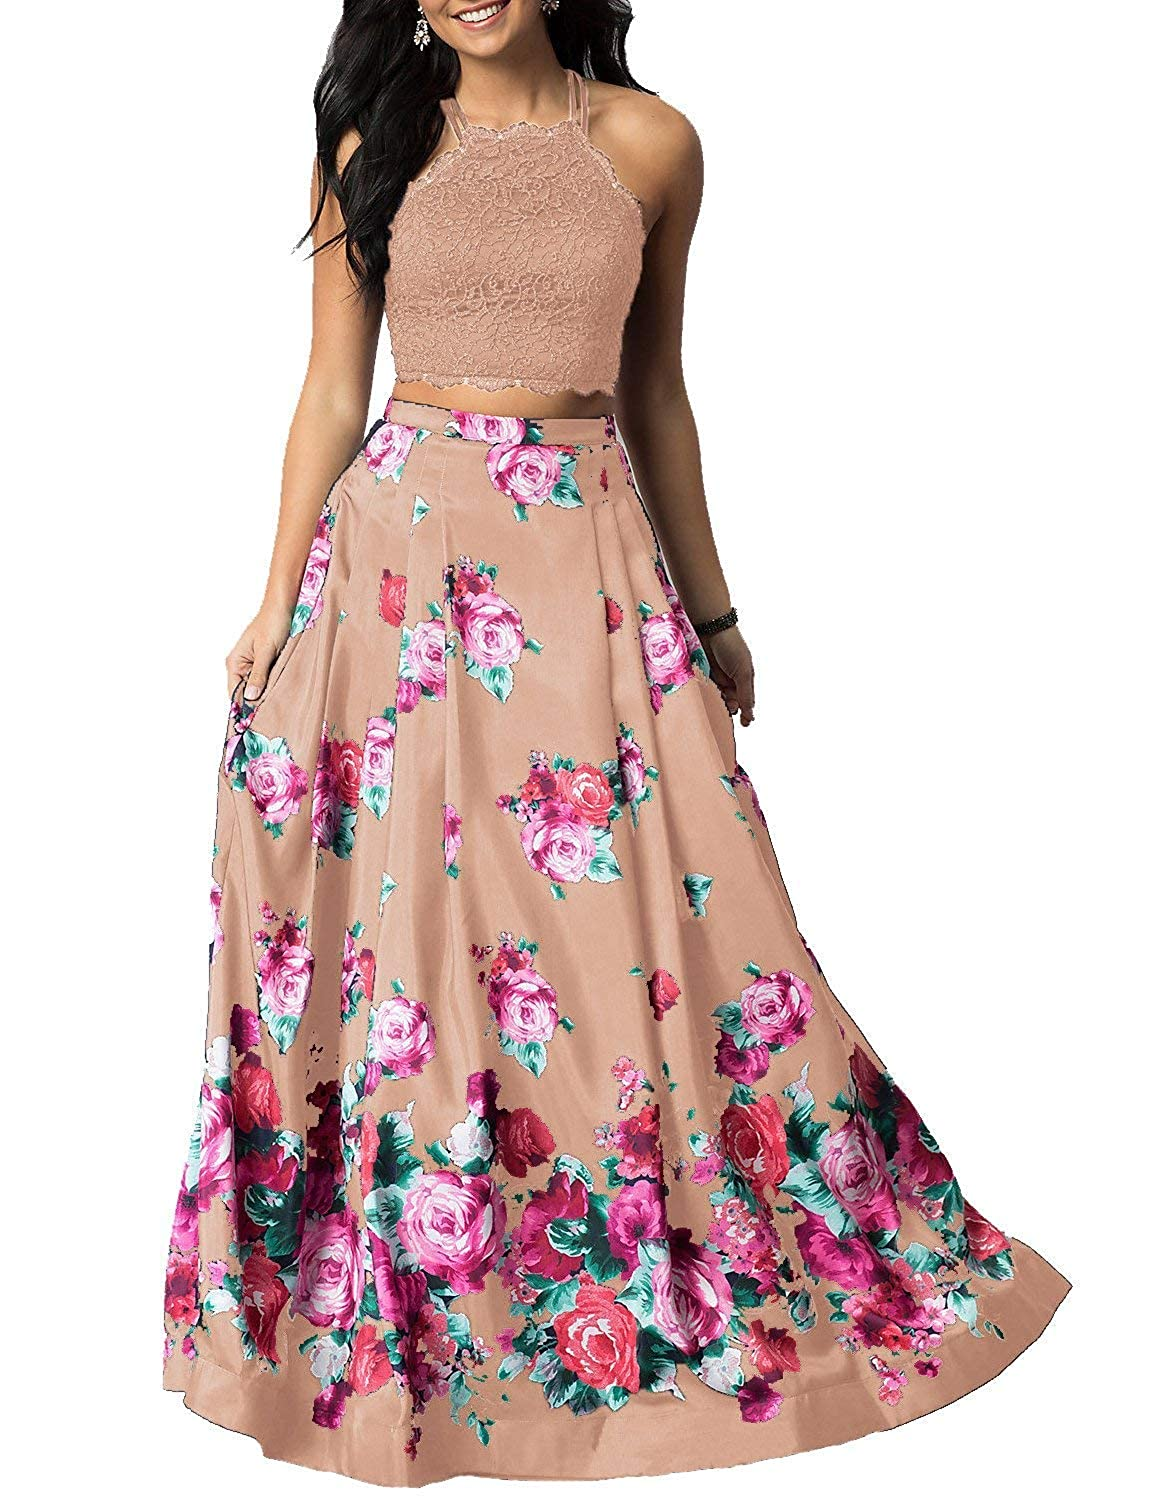 bluesh Sulidi Women's Halter Two Pieces Floral Printed Prom Dresses Long Satin Pleated Evening Formal Gown C095